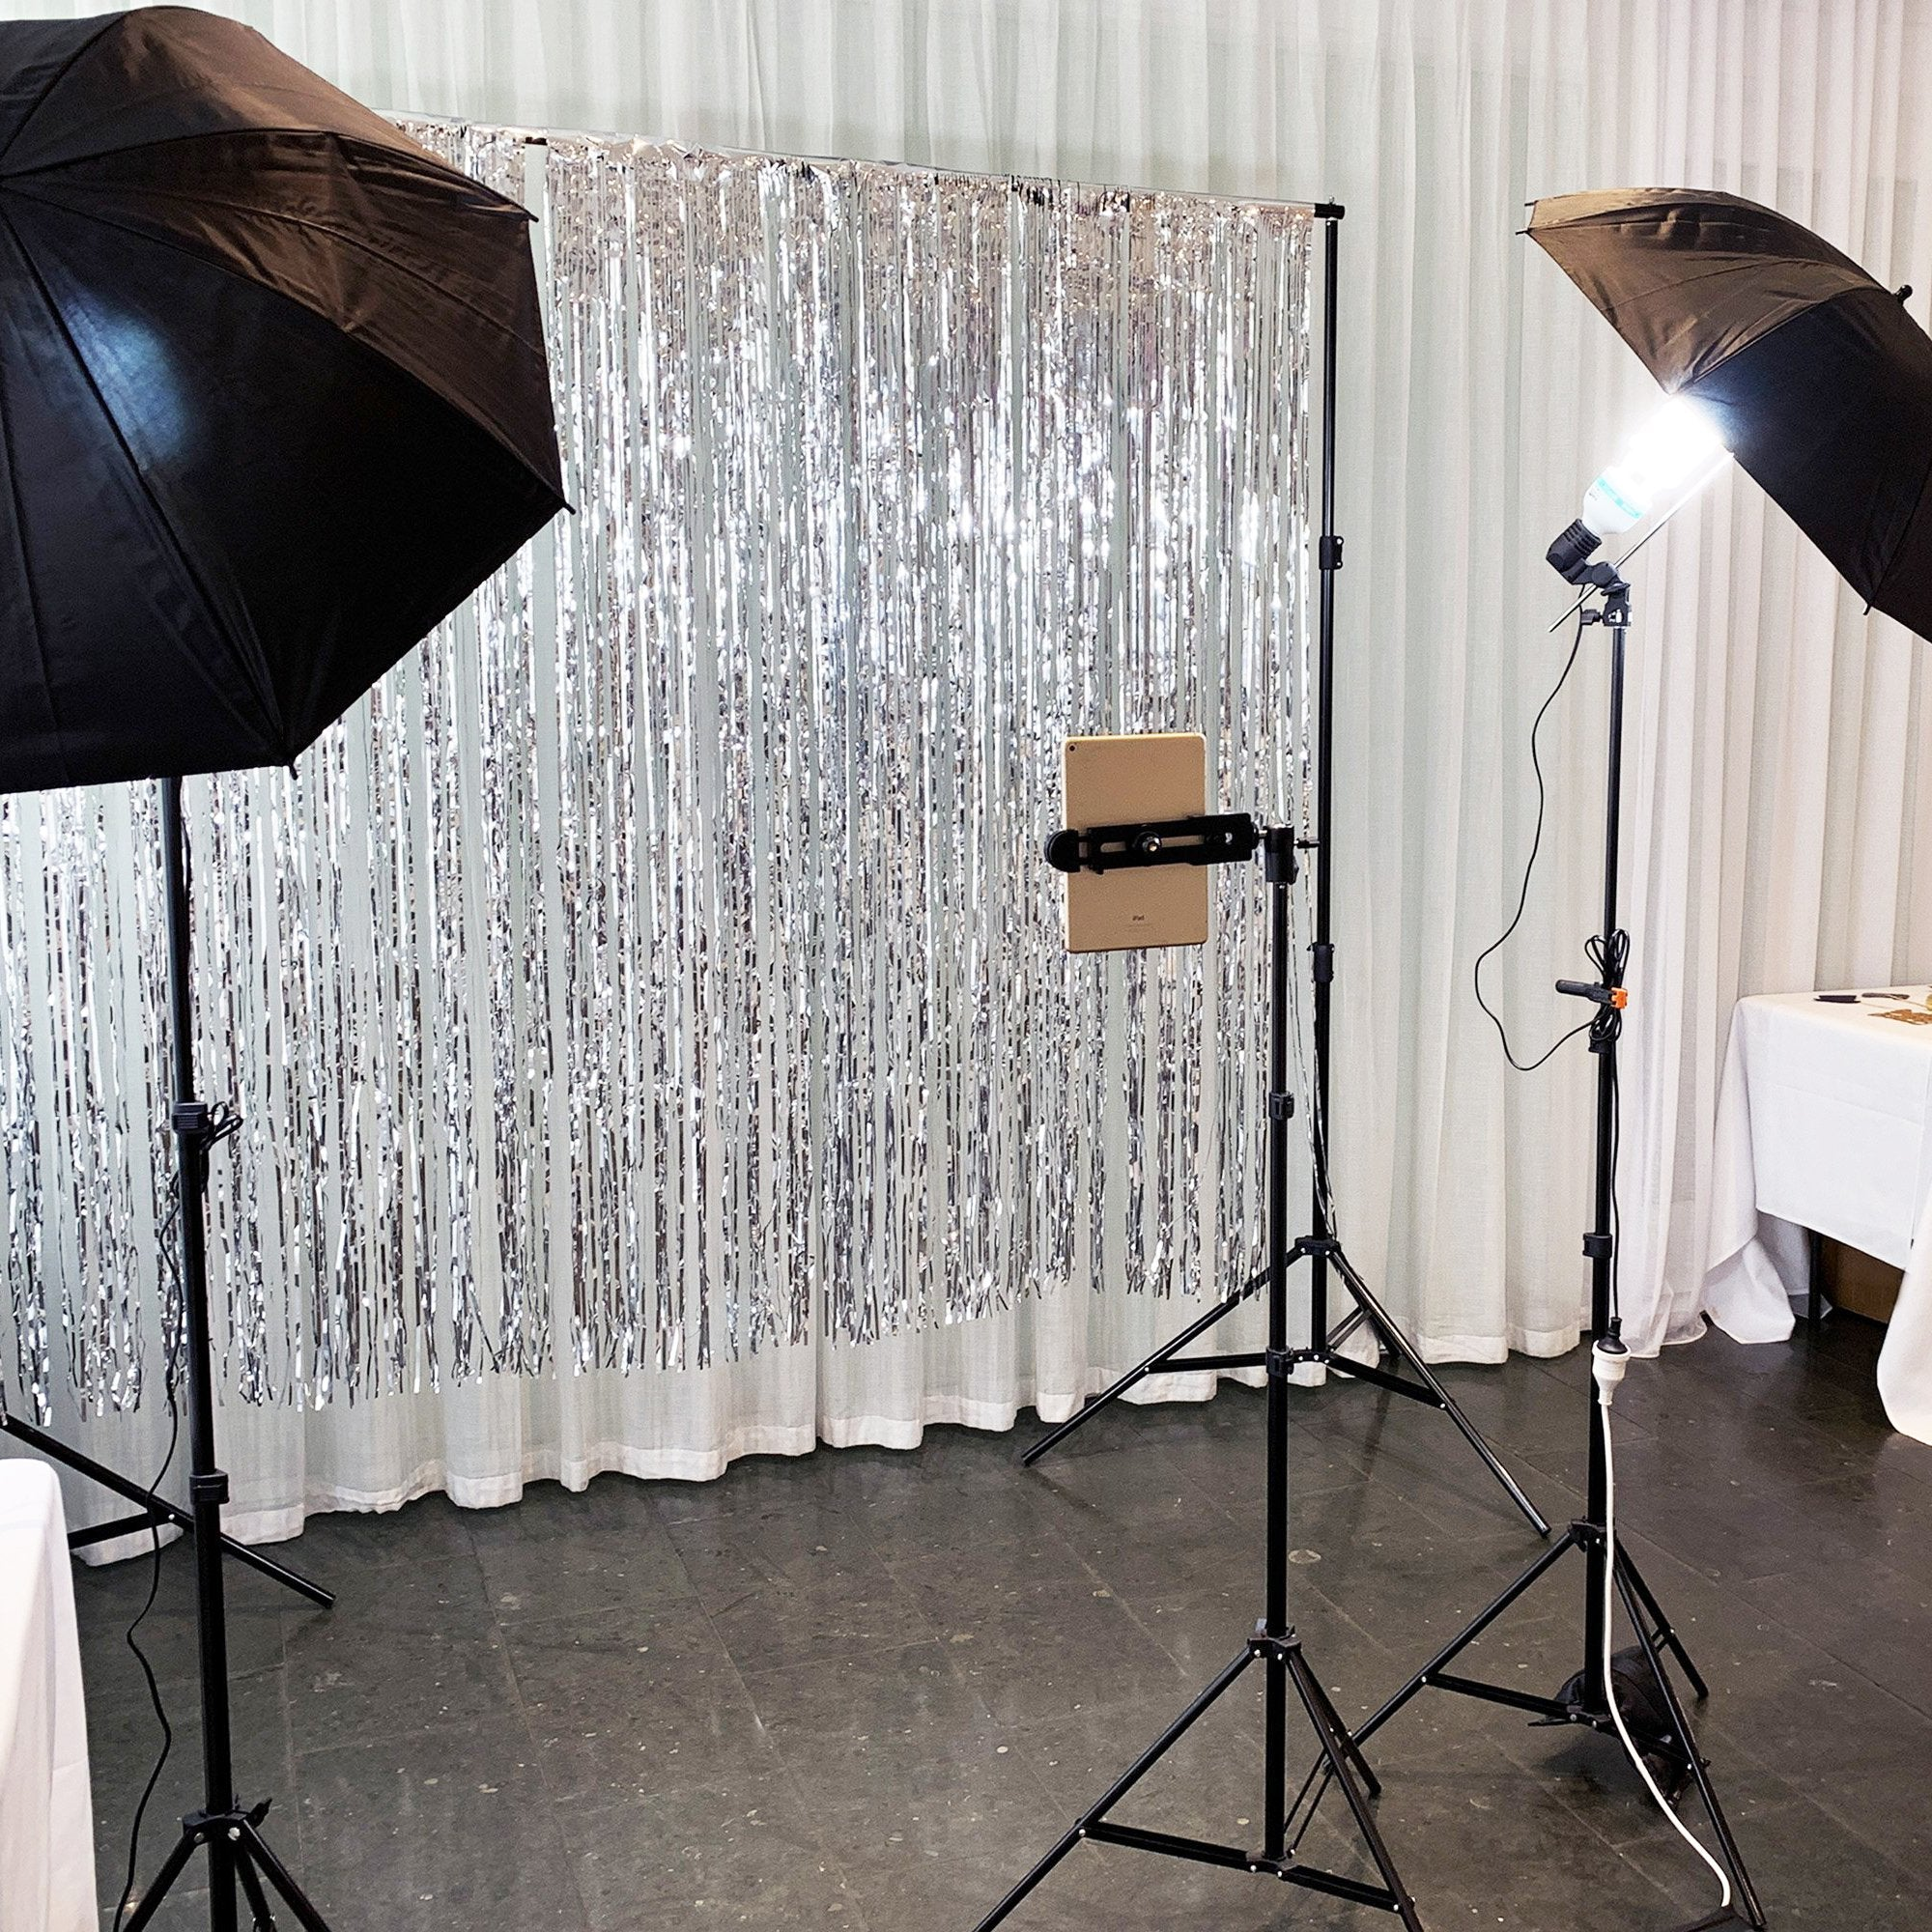 Spectrum DIY Party Photobooth Lighting 'HOLLYWOOD' Kit